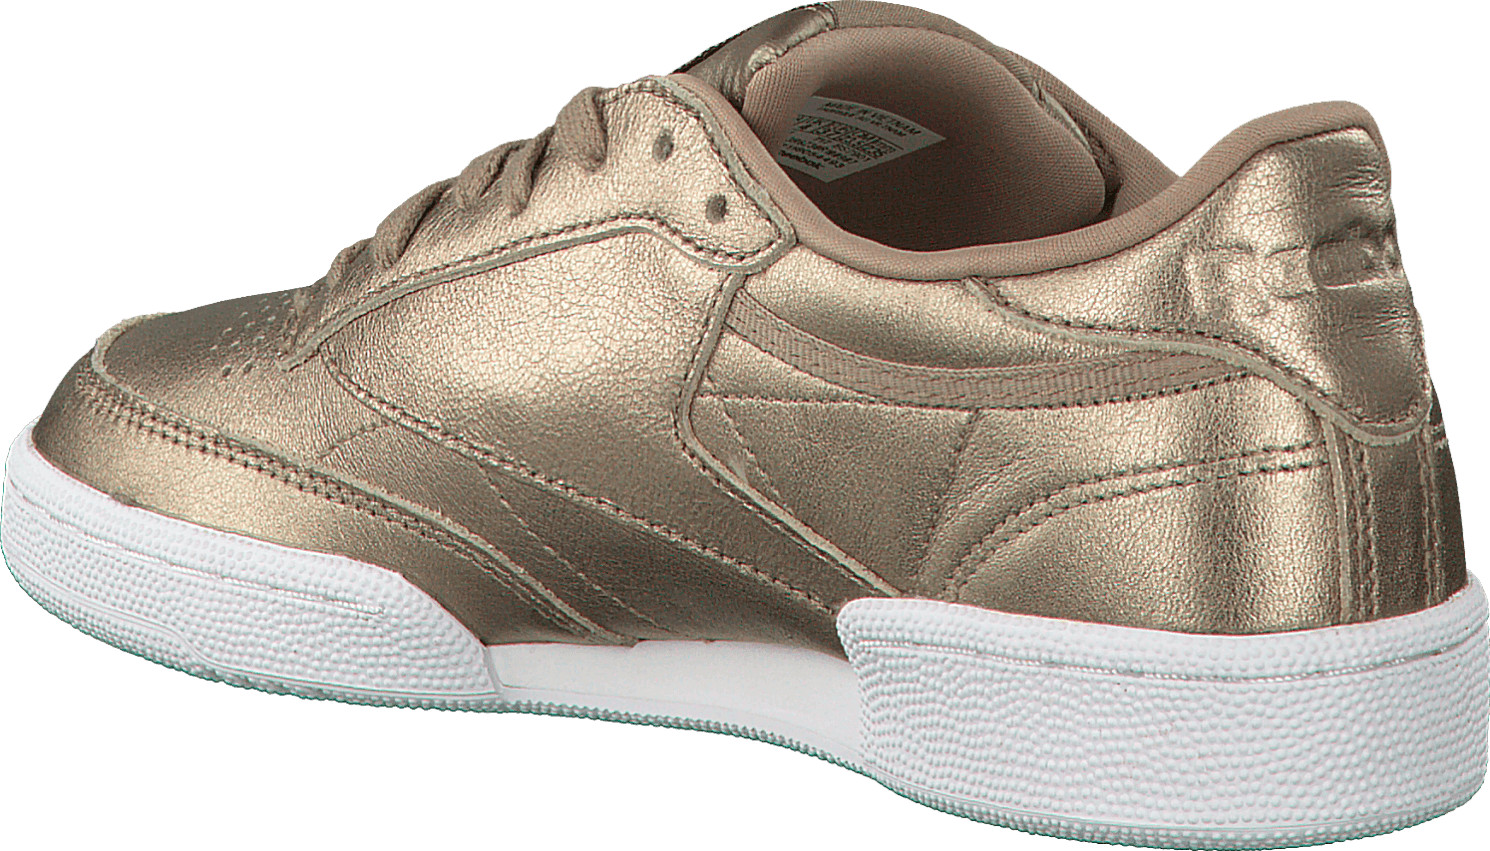 quality design 437f0 af50d Reebok Club C 85 Melted Metals Women pearl met-grey goldwhite